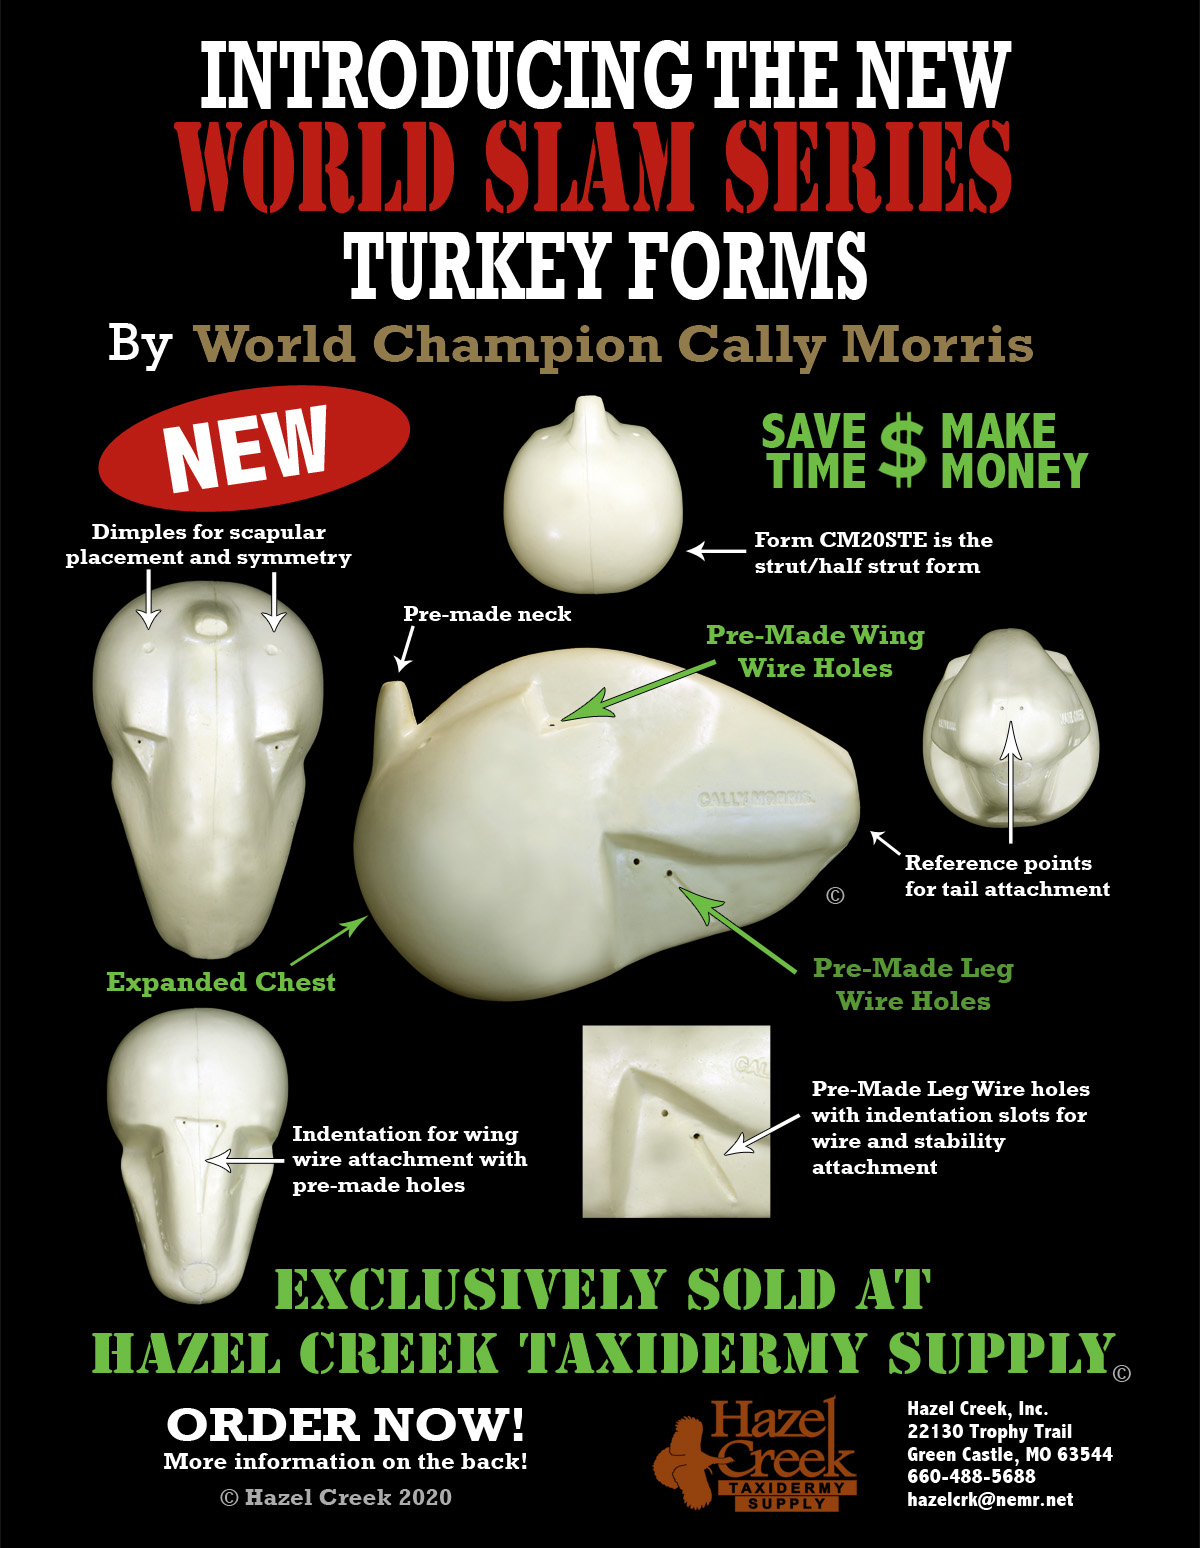 Forms for Turkey Taxidermy